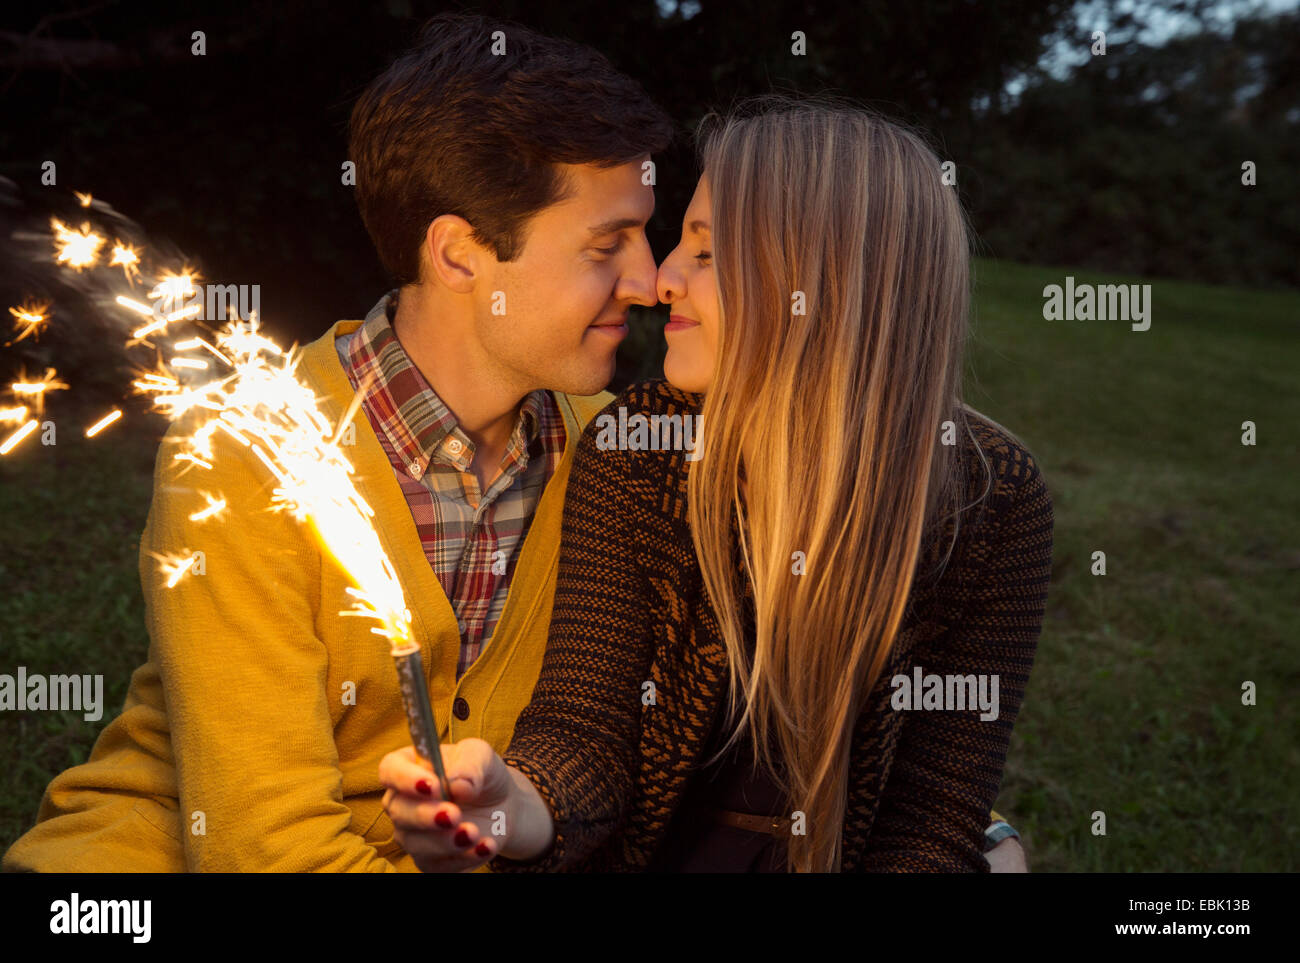 Young couple nose to nose in park holding sparkling firework - Stock Image